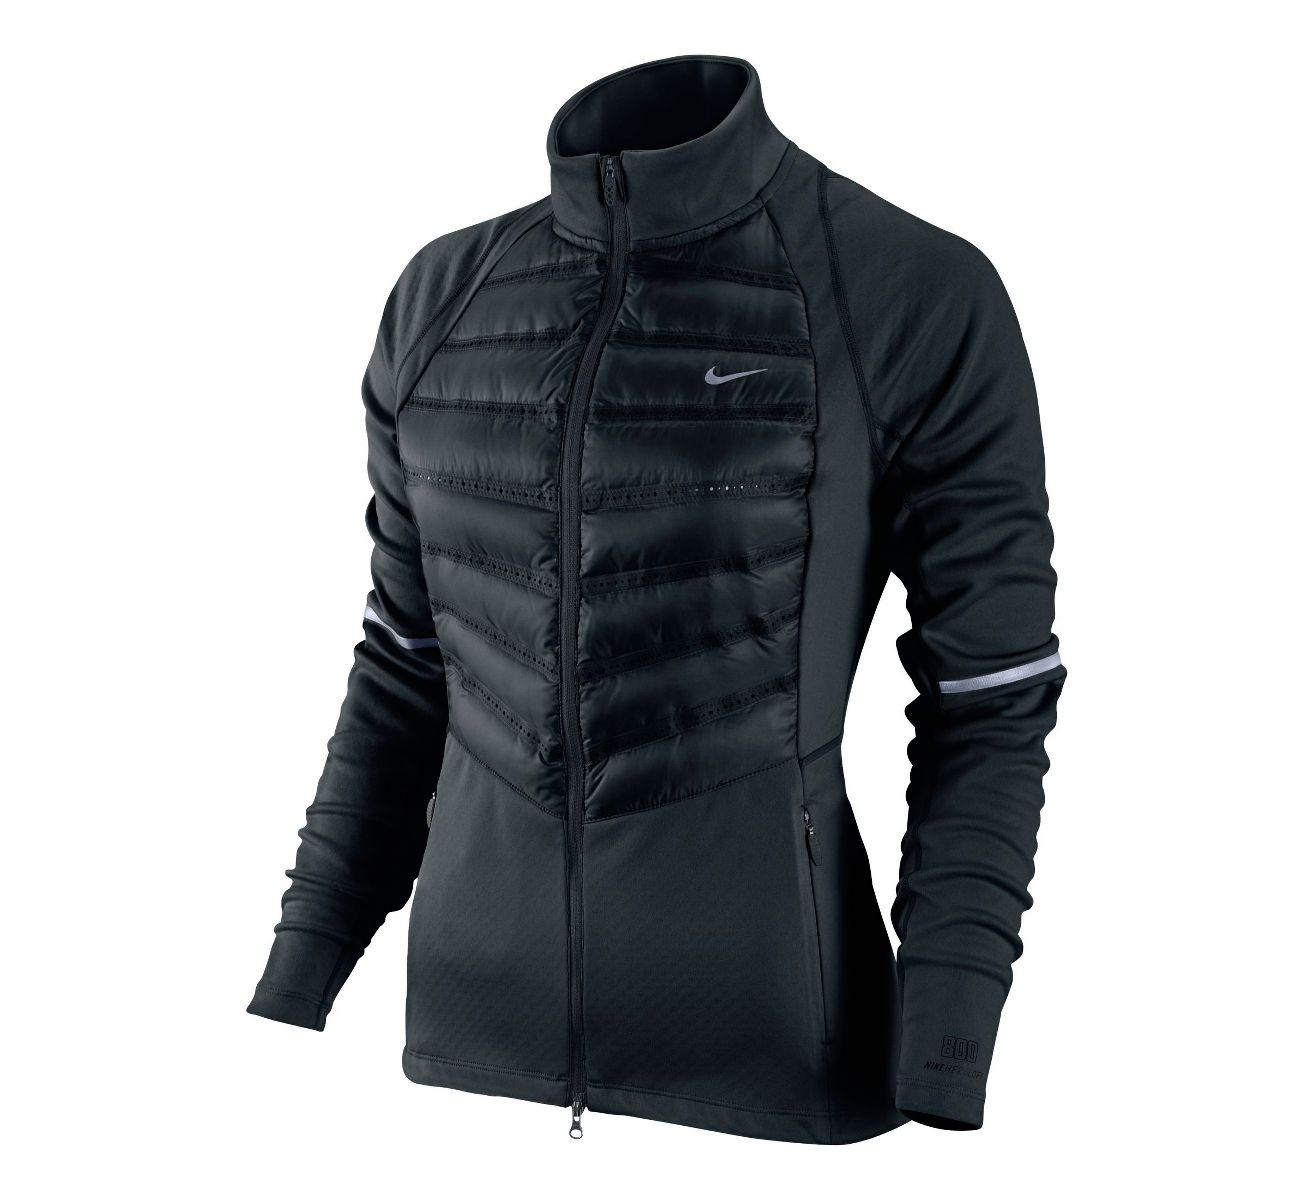 Reflective Lightweight Jackets | Road Runner Sports